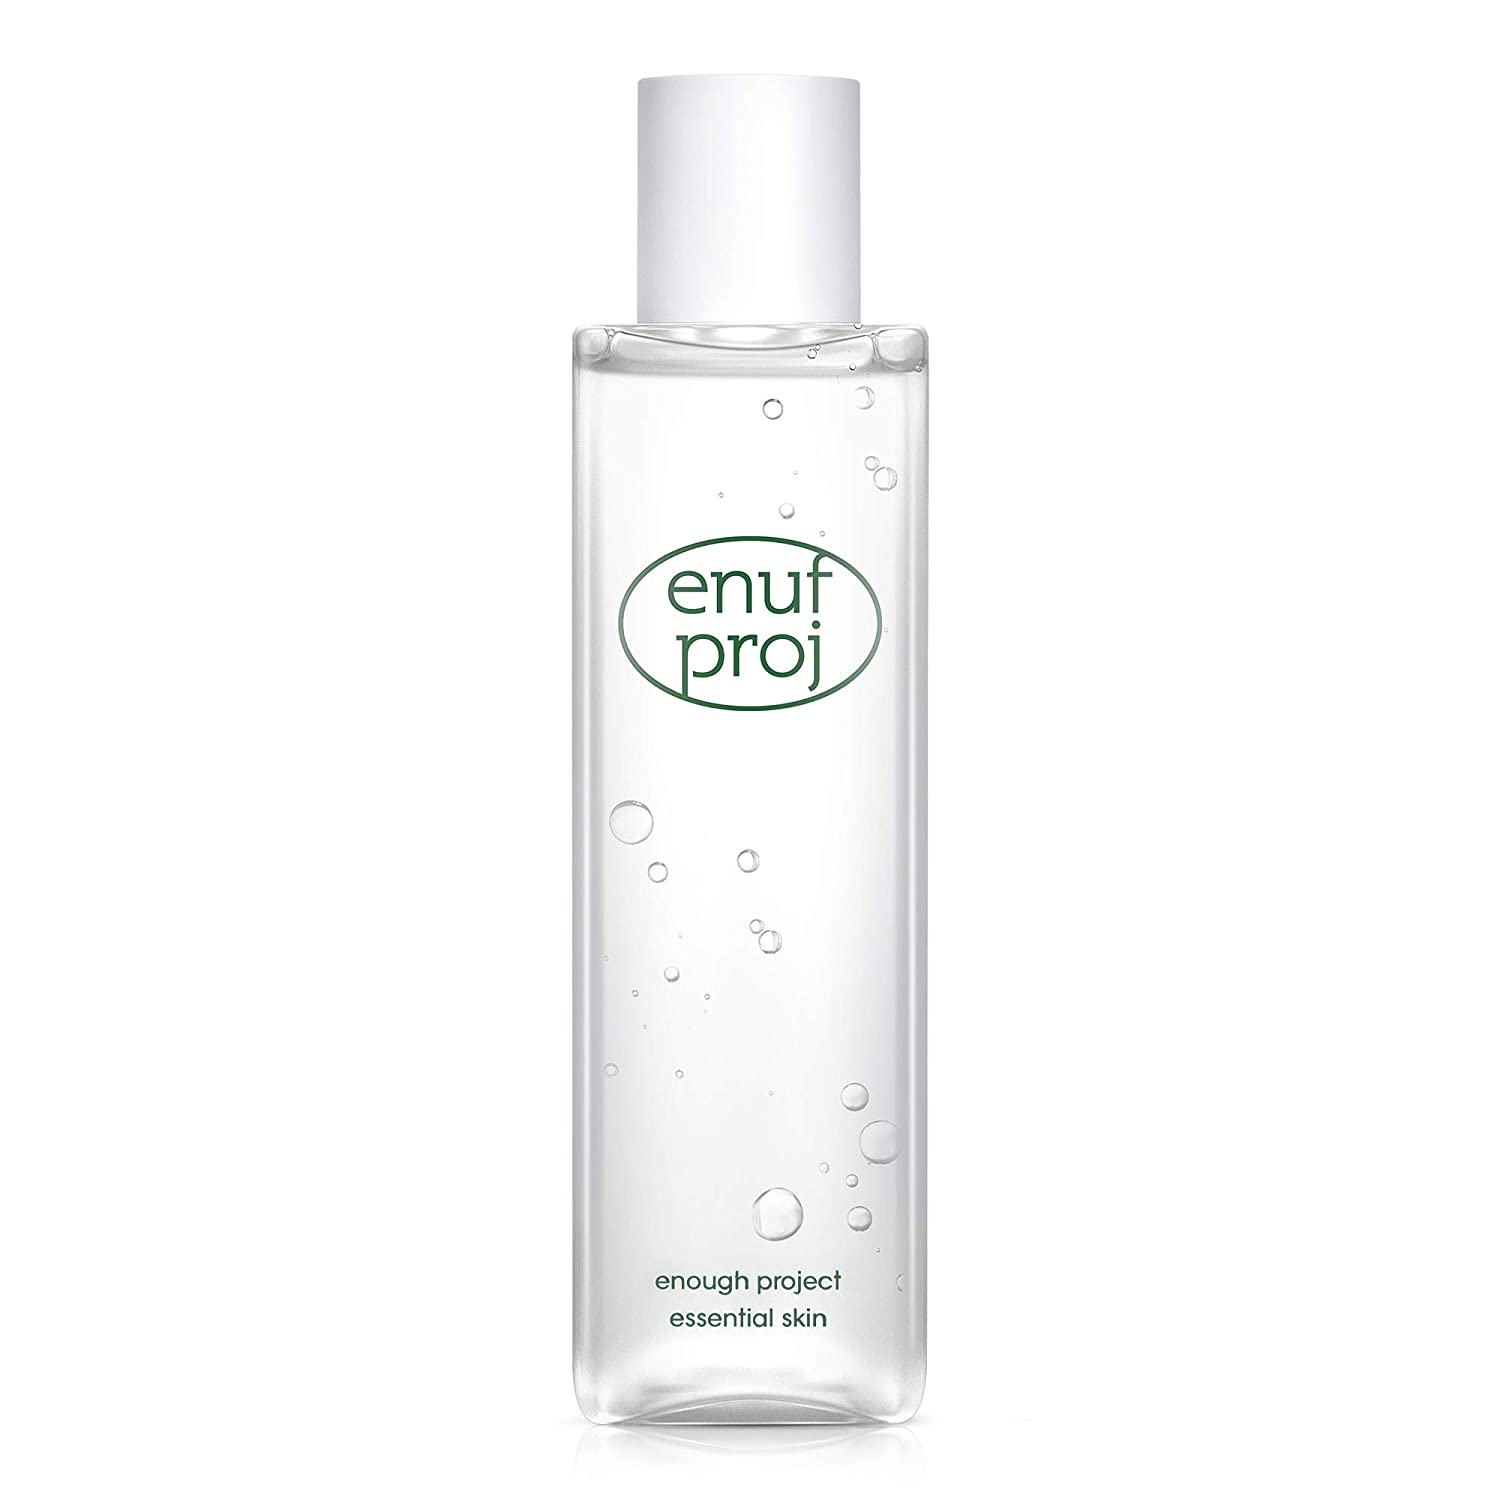 Enough Project Face Toner by Amorepacific- Essential Skin Korean Toner for Face with Beta-Hyaluronic Acid & Panthenol - Facial Toner for Women & Men - Hydration & Moisturizing - 6.76 Fl Oz